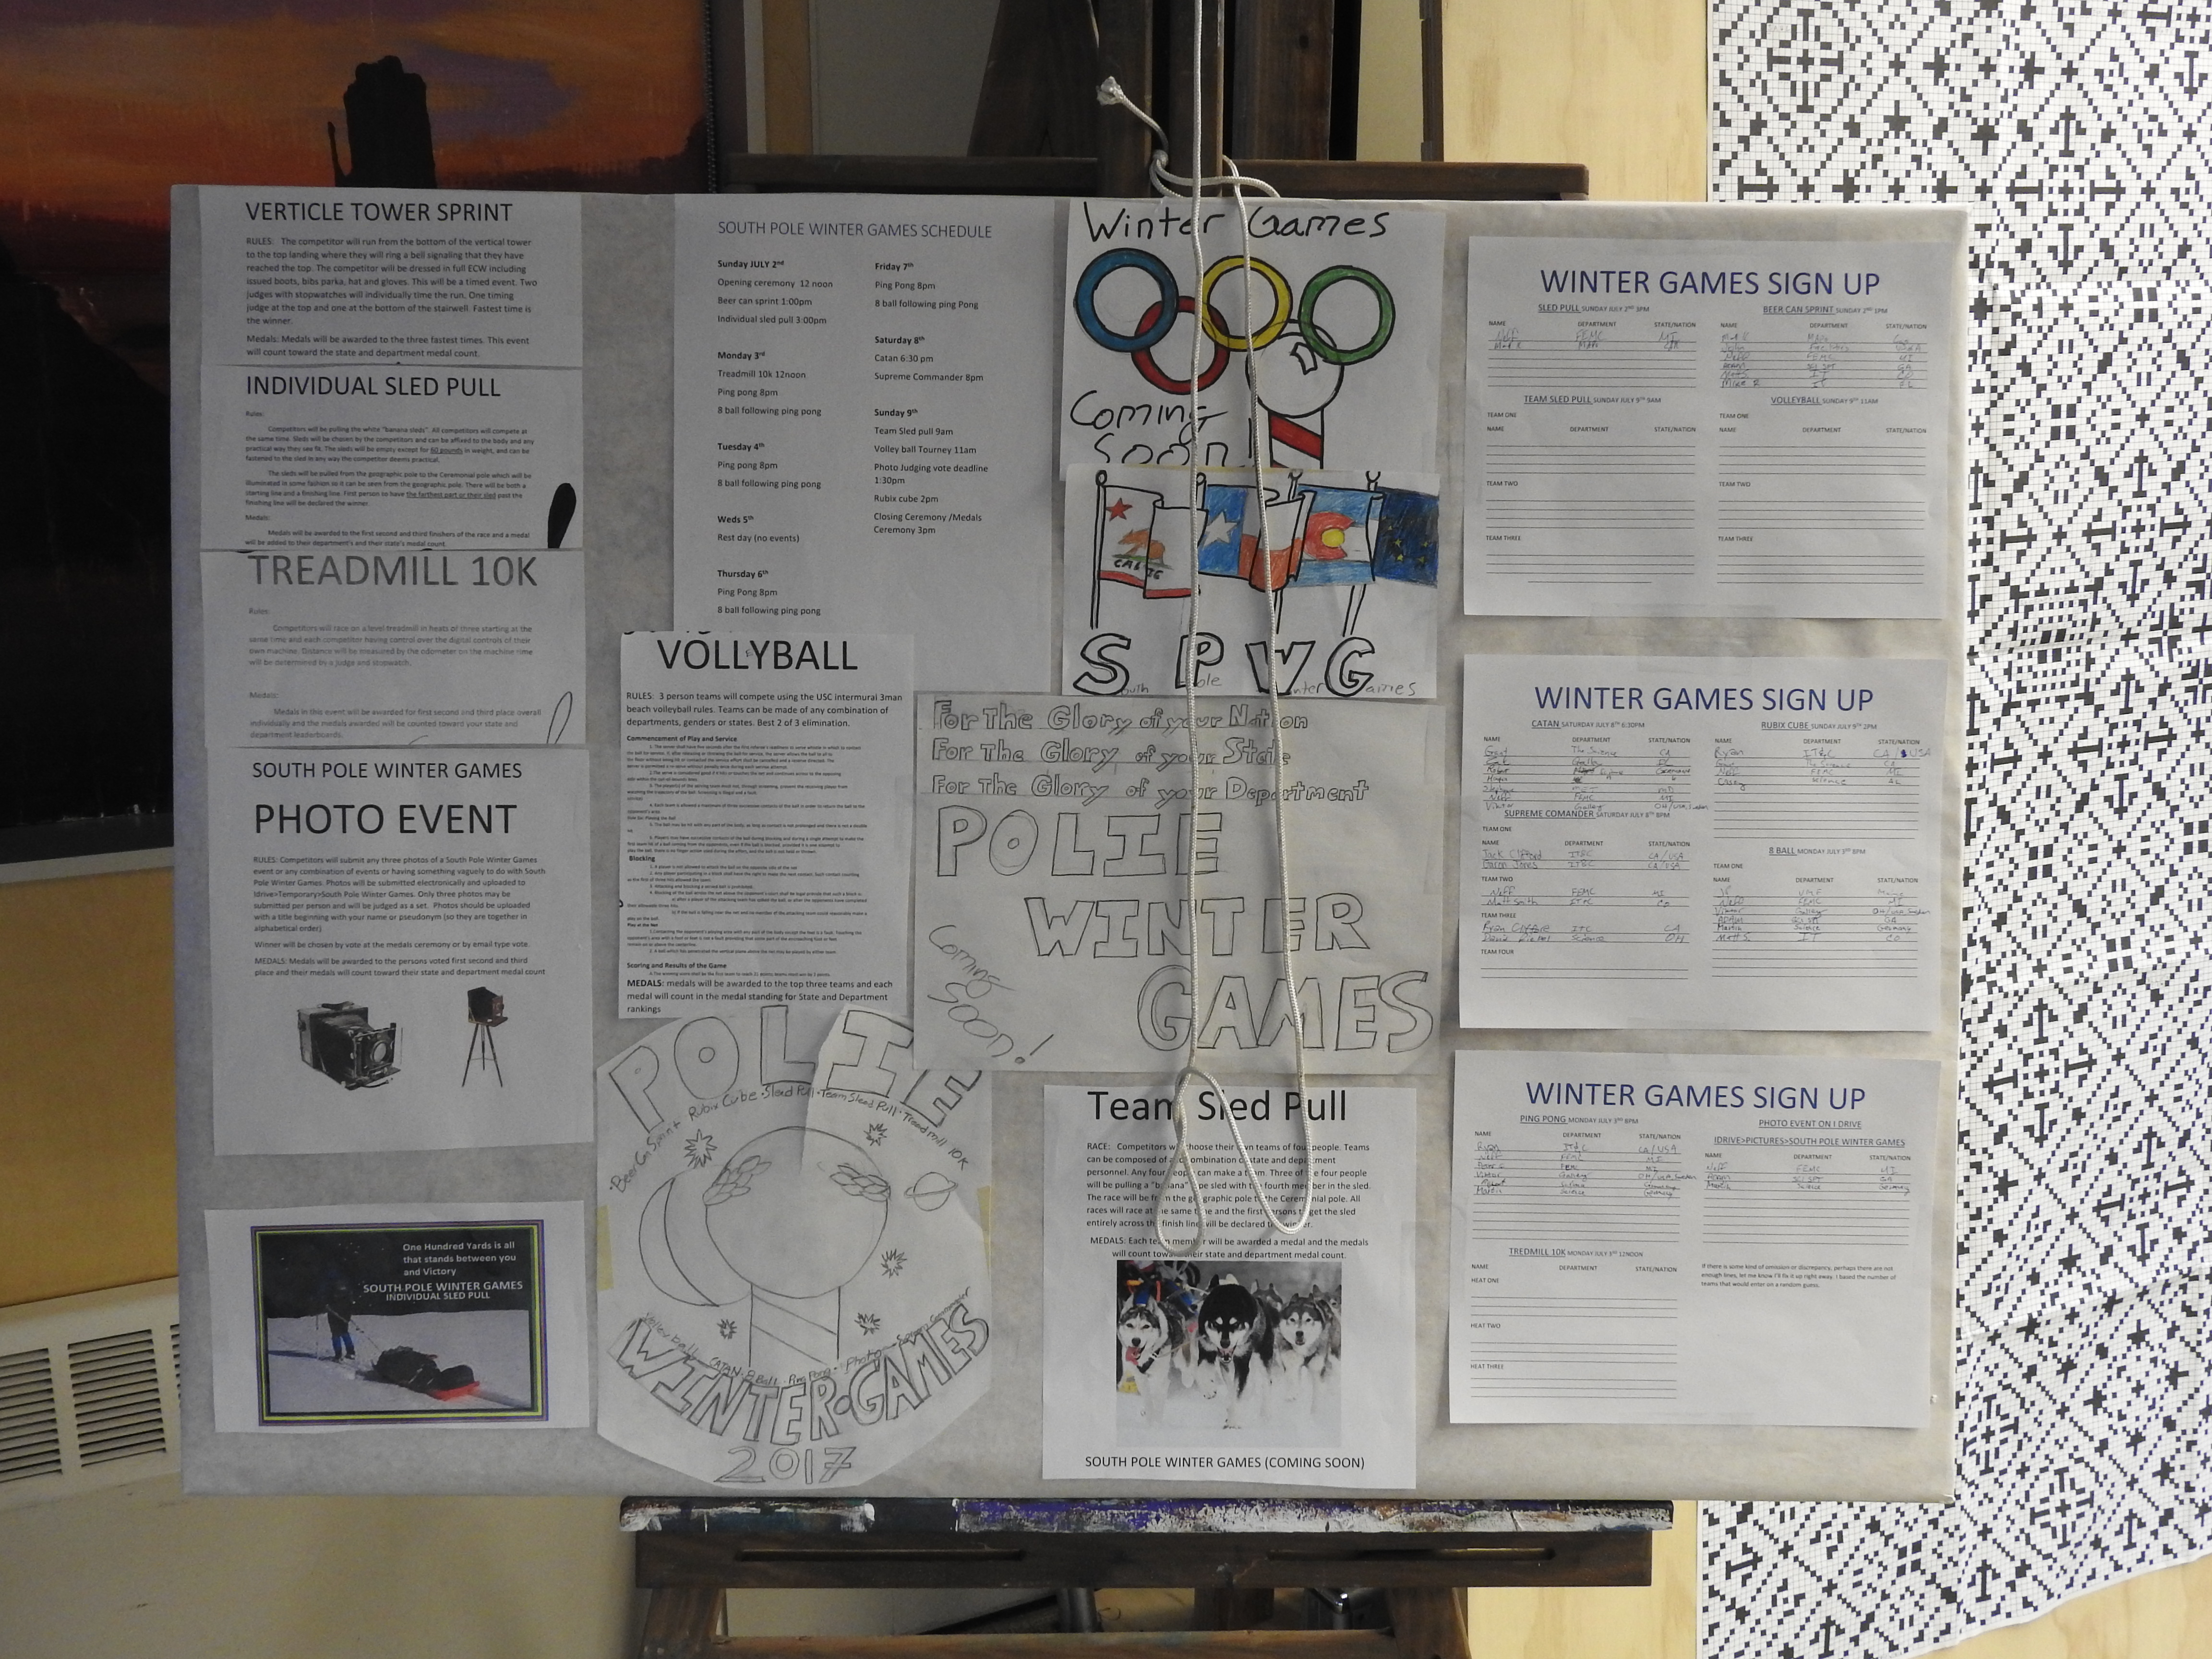 The South Pole Winter Games - announcement board (Photo: James Casey)